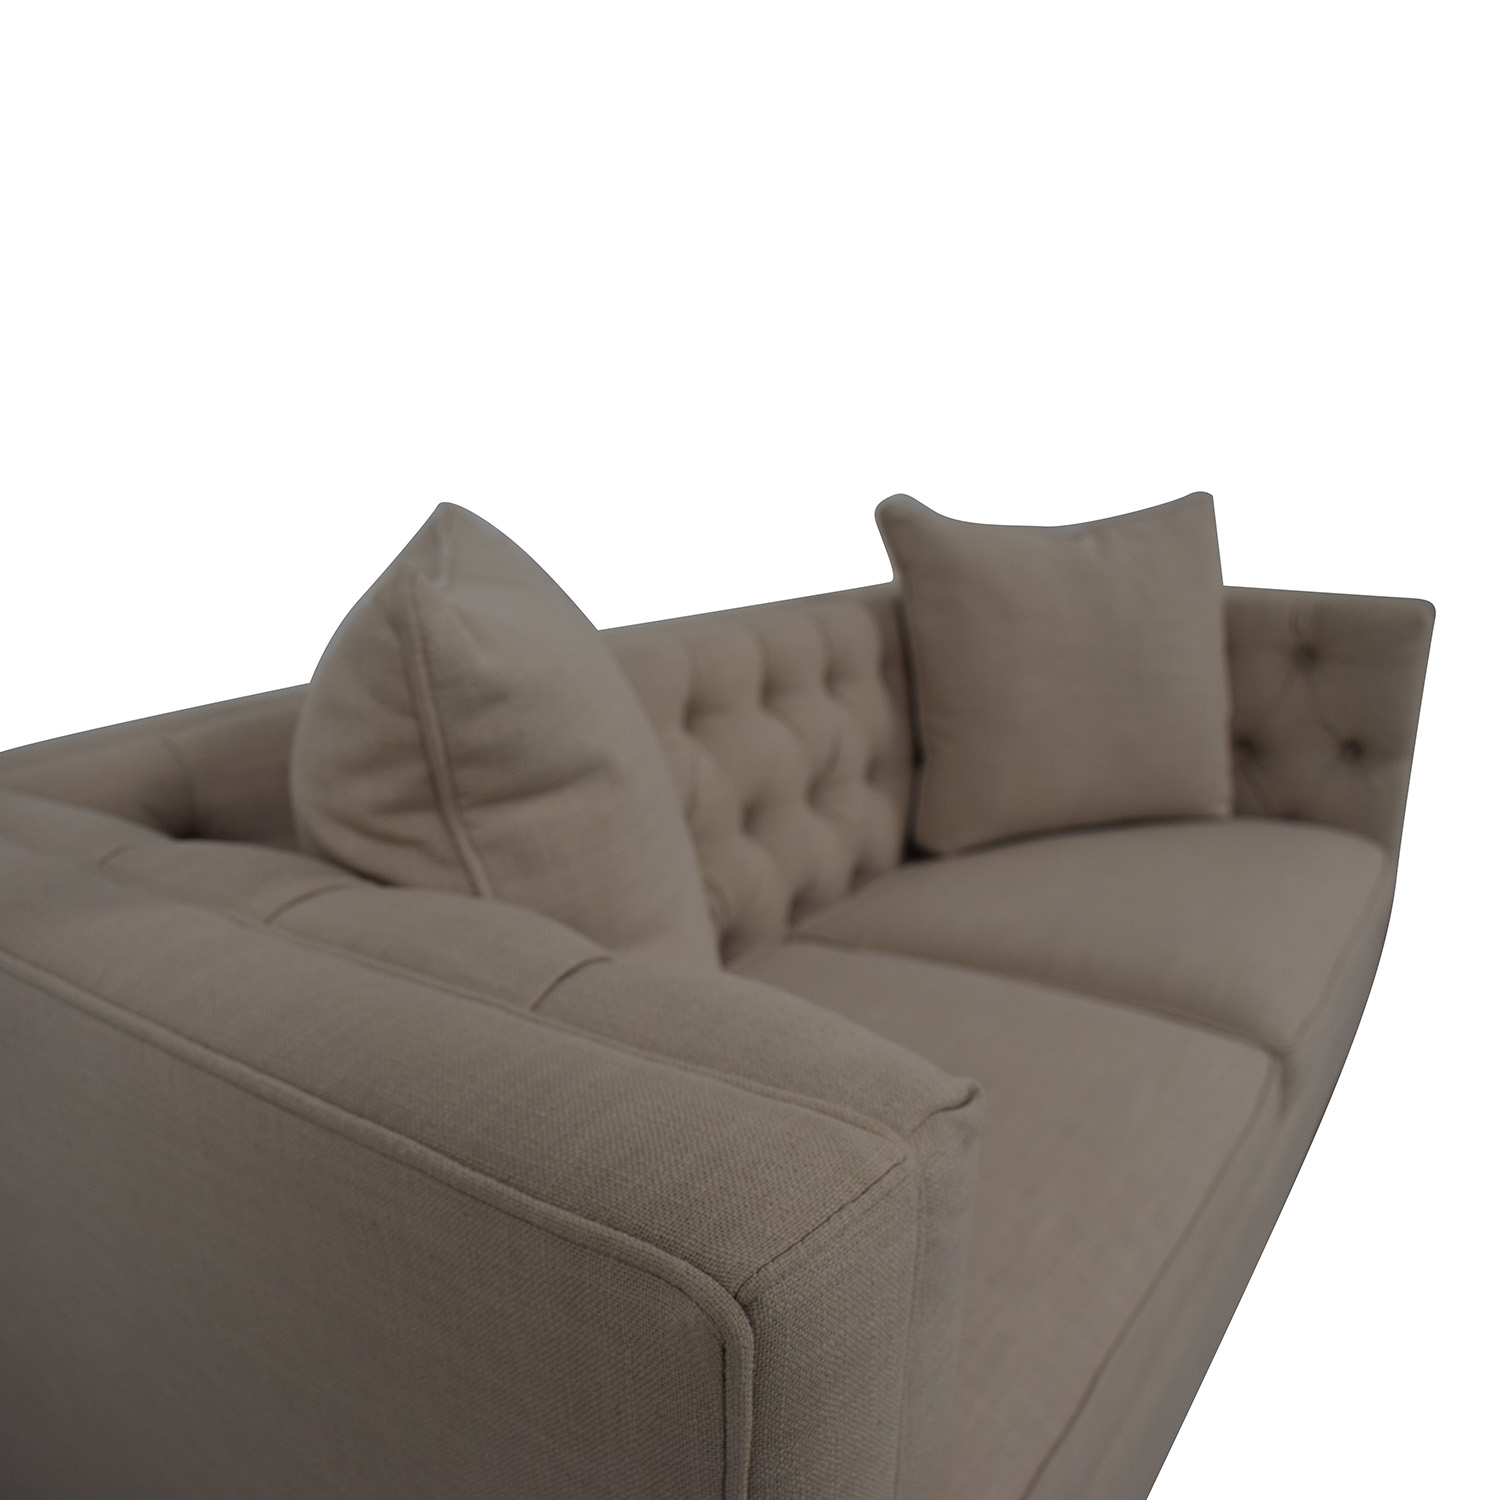 82% OFF - Home Decorators Collection Home Decorators Collection Lakewood Home Decorators Collection Furniture Couches on target furniture, kohl's furniture, hsn furniture, macy's furniture, williams-sonoma furniture, pottery barn furniture, jcpenney furniture, office depot furniture, officemax furniture, sam's club furniture, fingerhut furniture, amazon furniture, neiman marcus furniture, sears furniture, west elm furniture, ballard designs furniture, kmart furniture, walmart furniture, lego furniture, crate & barrel furniture,